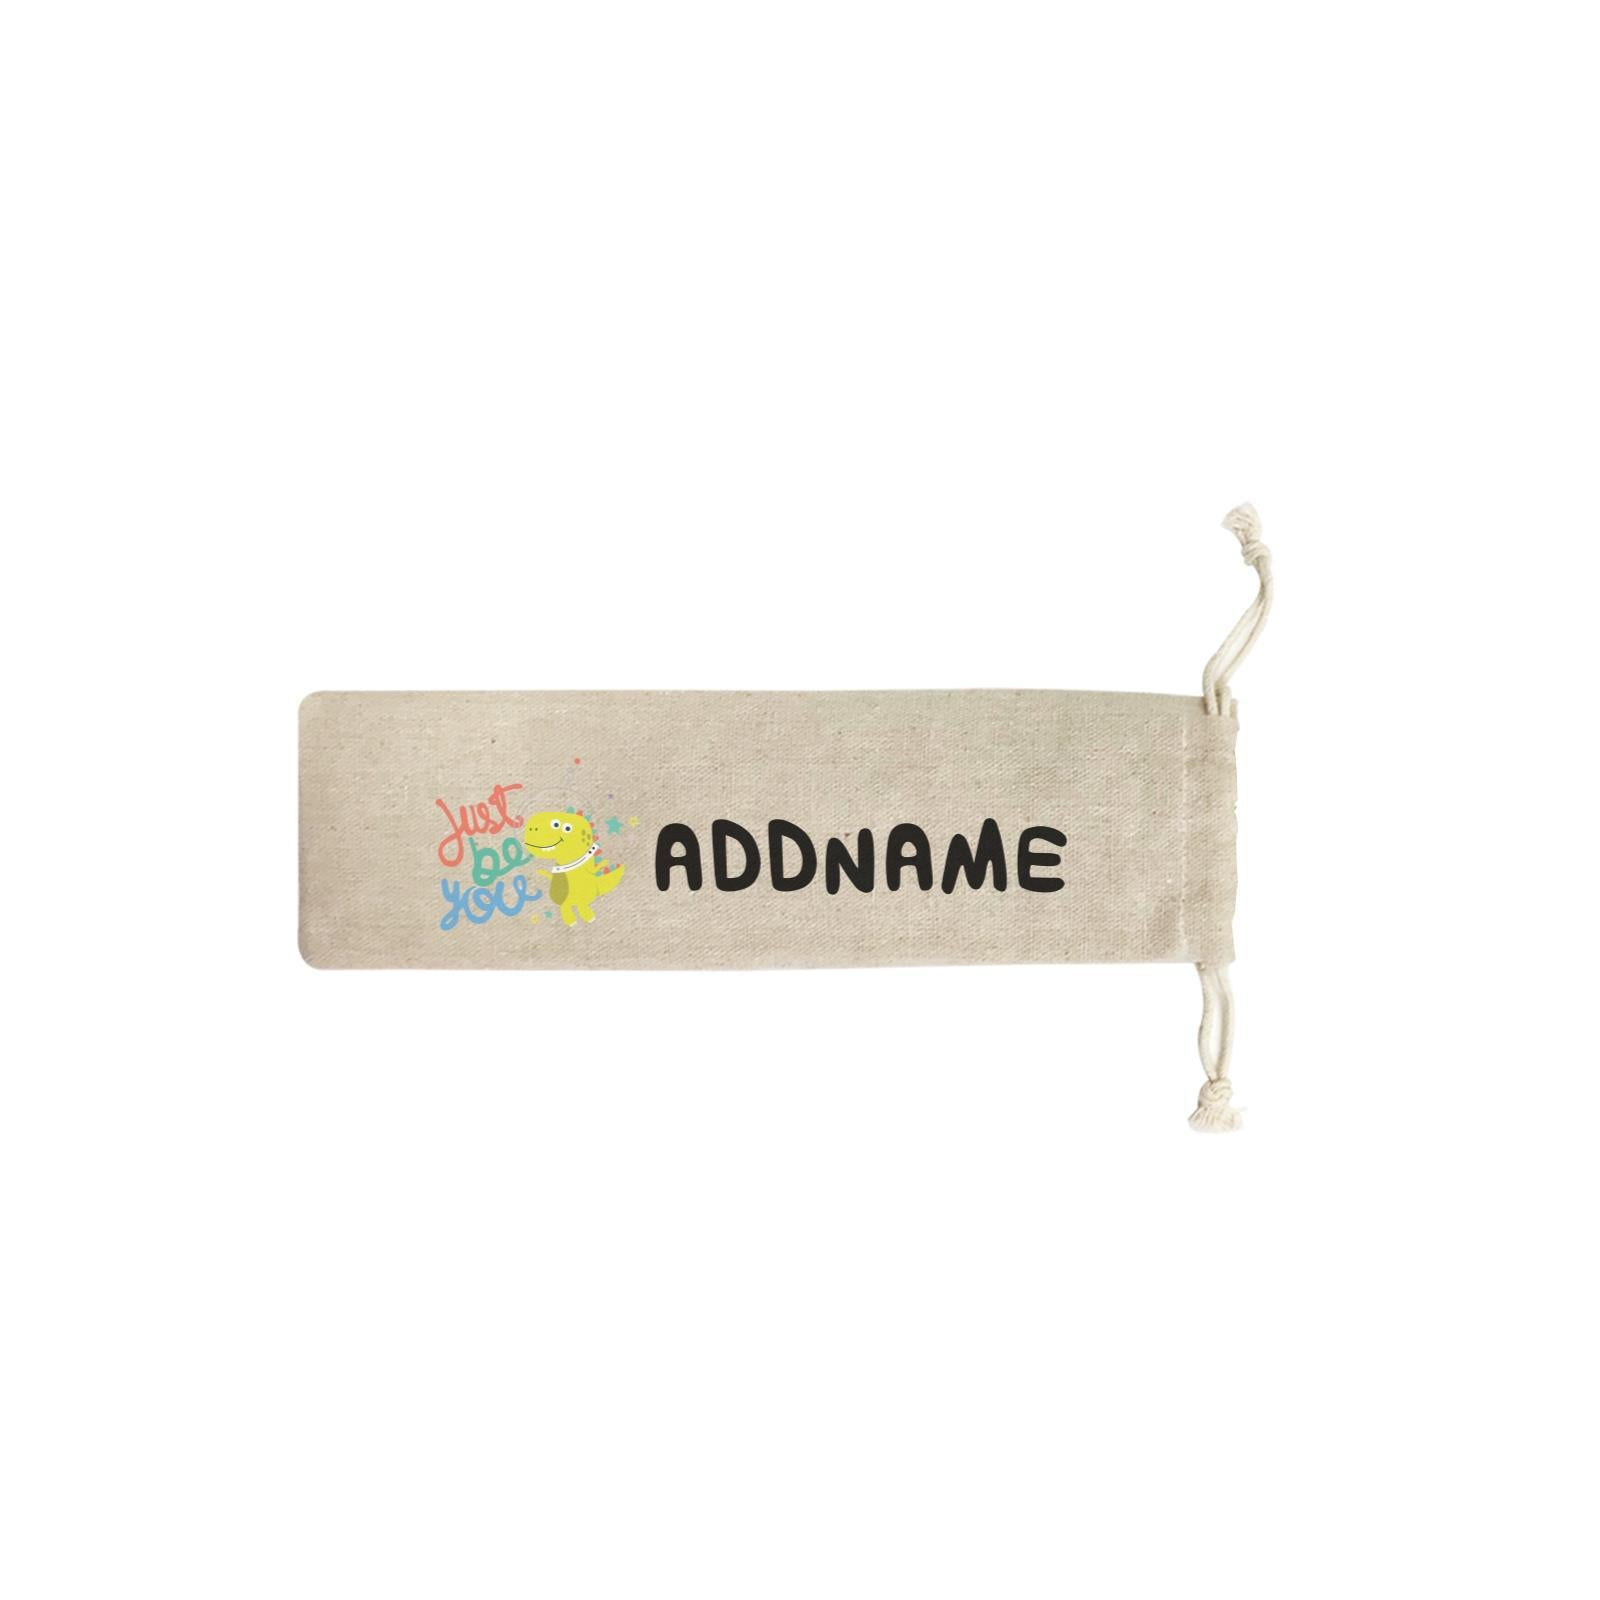 Children's Day Gift Series Just Be You Space Dinosaur Addname SB Straw Pouch (No Straws included)